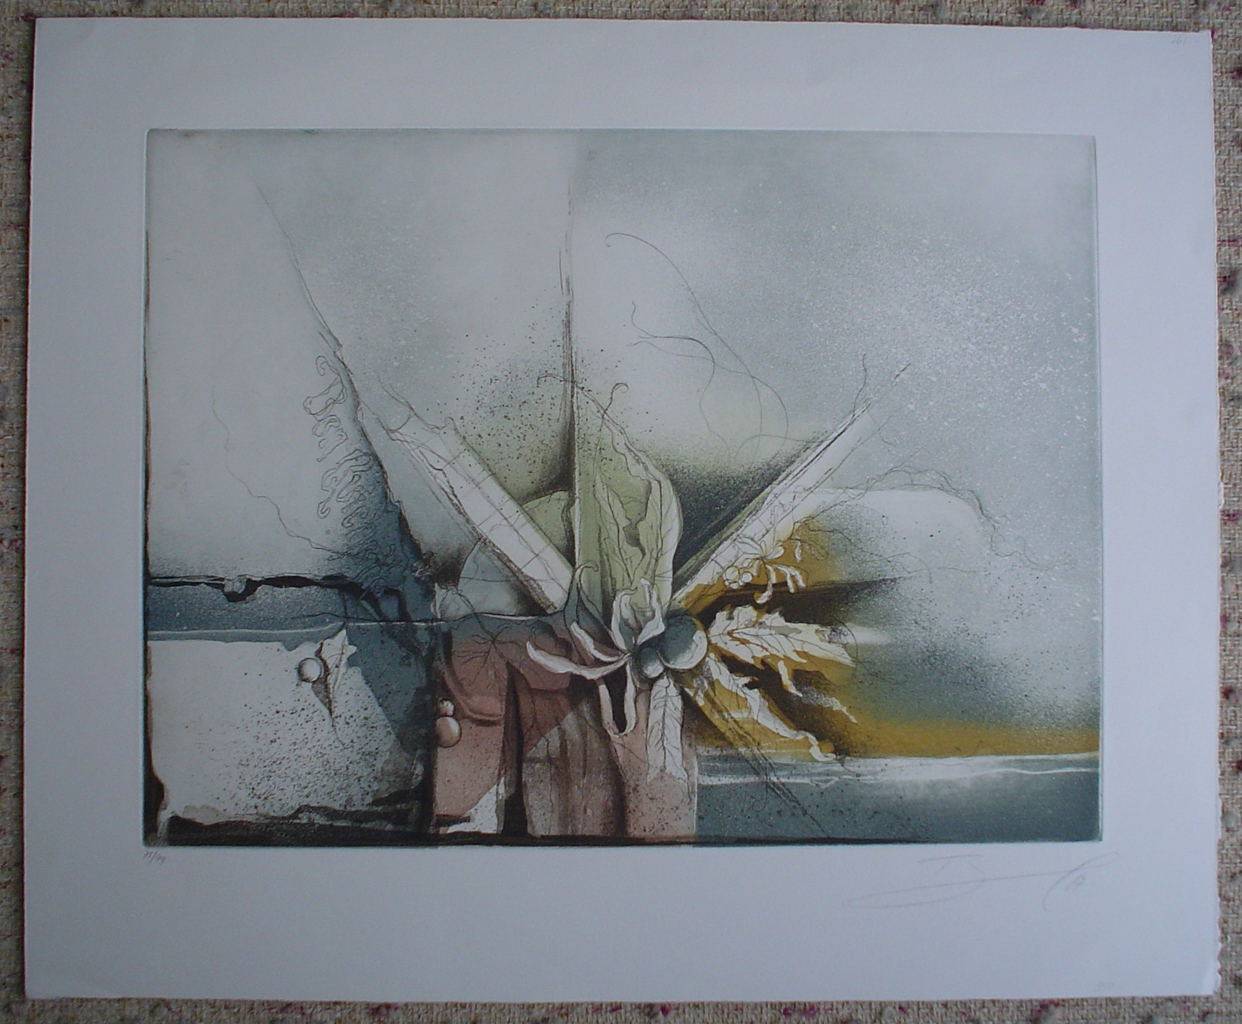 Blue Flower Autumn Colours by Ruediger Brassel, shown with full margins - original etching, signed and numbered 75/ 99